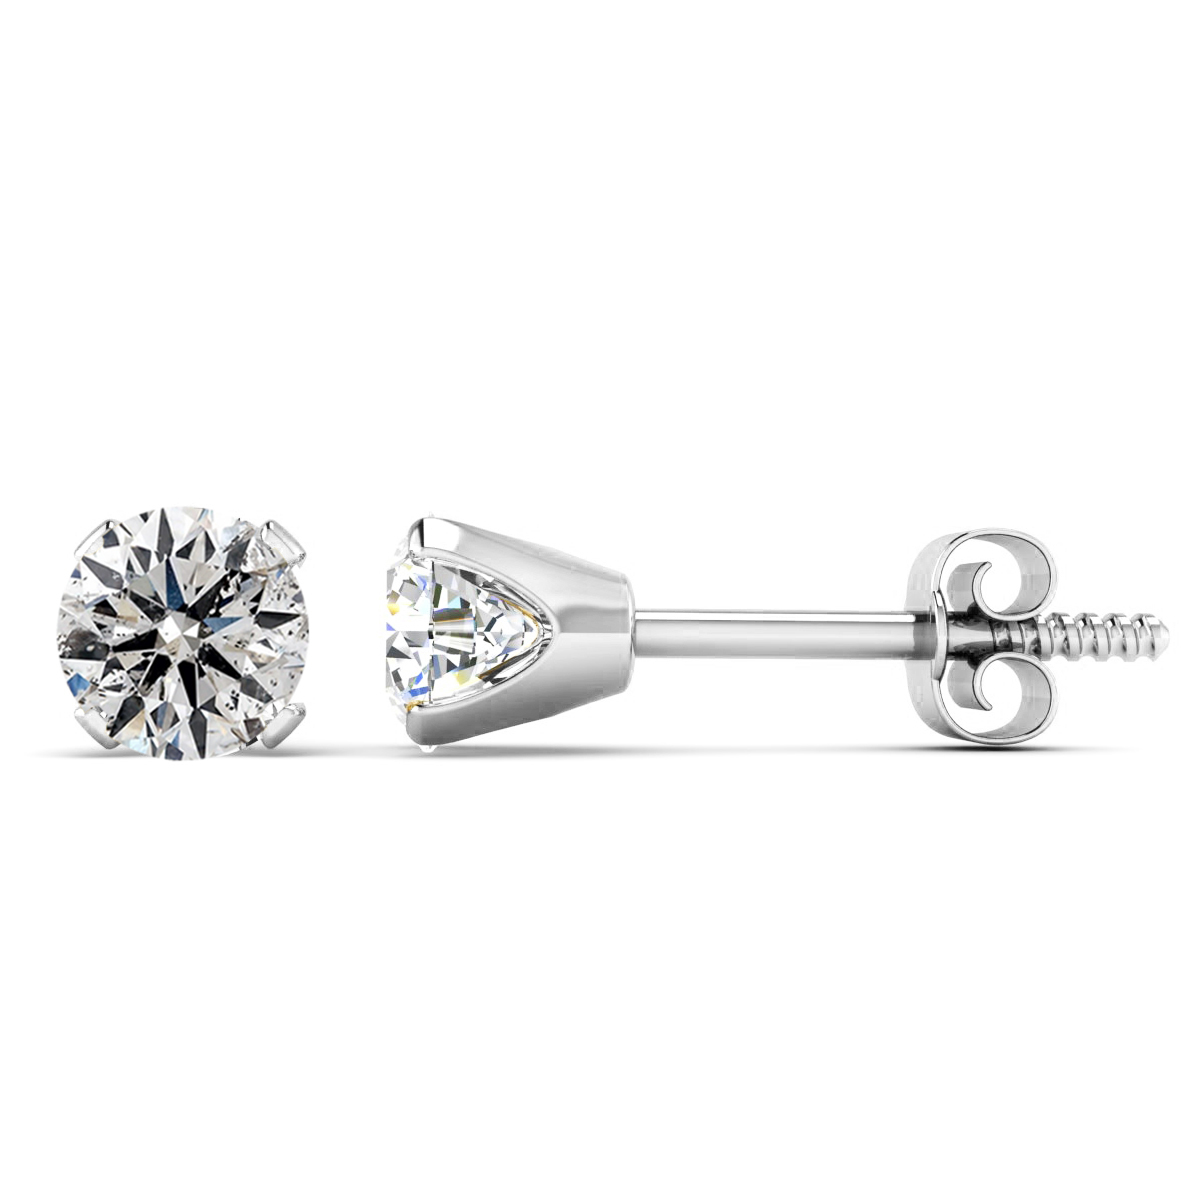 in diamond karat earrings screwbacks set details stud j white gold com index superjeweler i